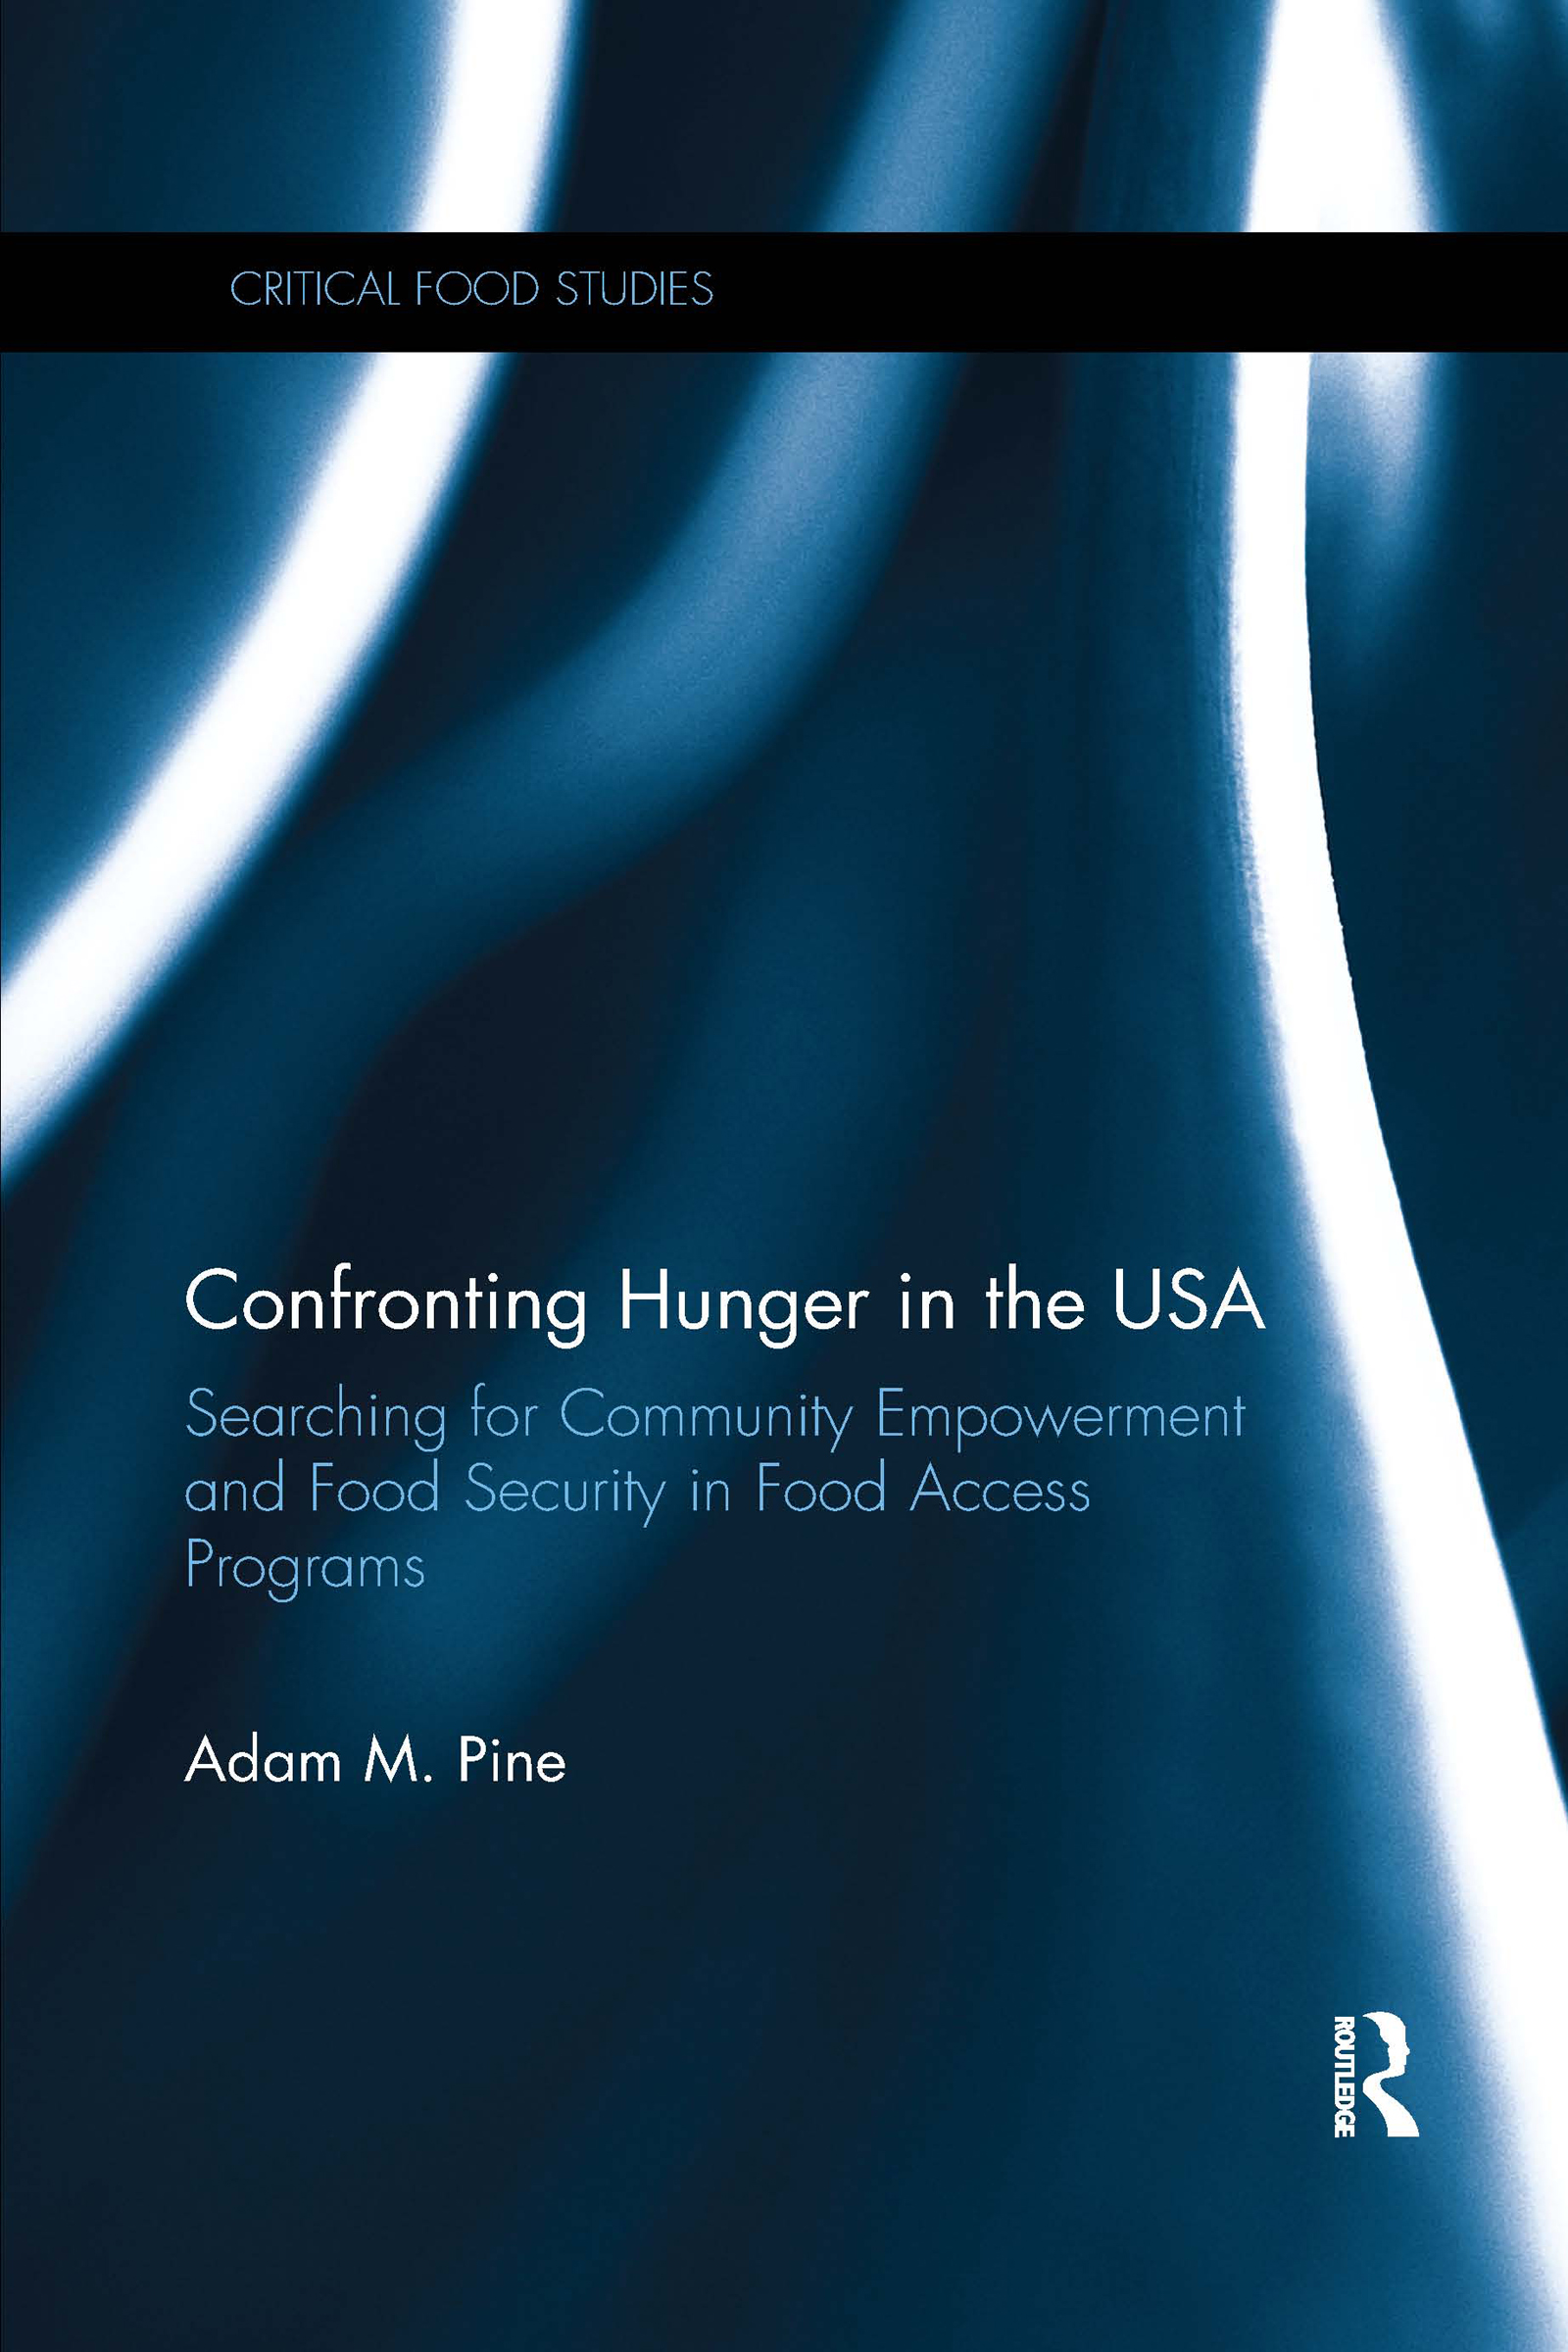 Confronting Hunger in the USA